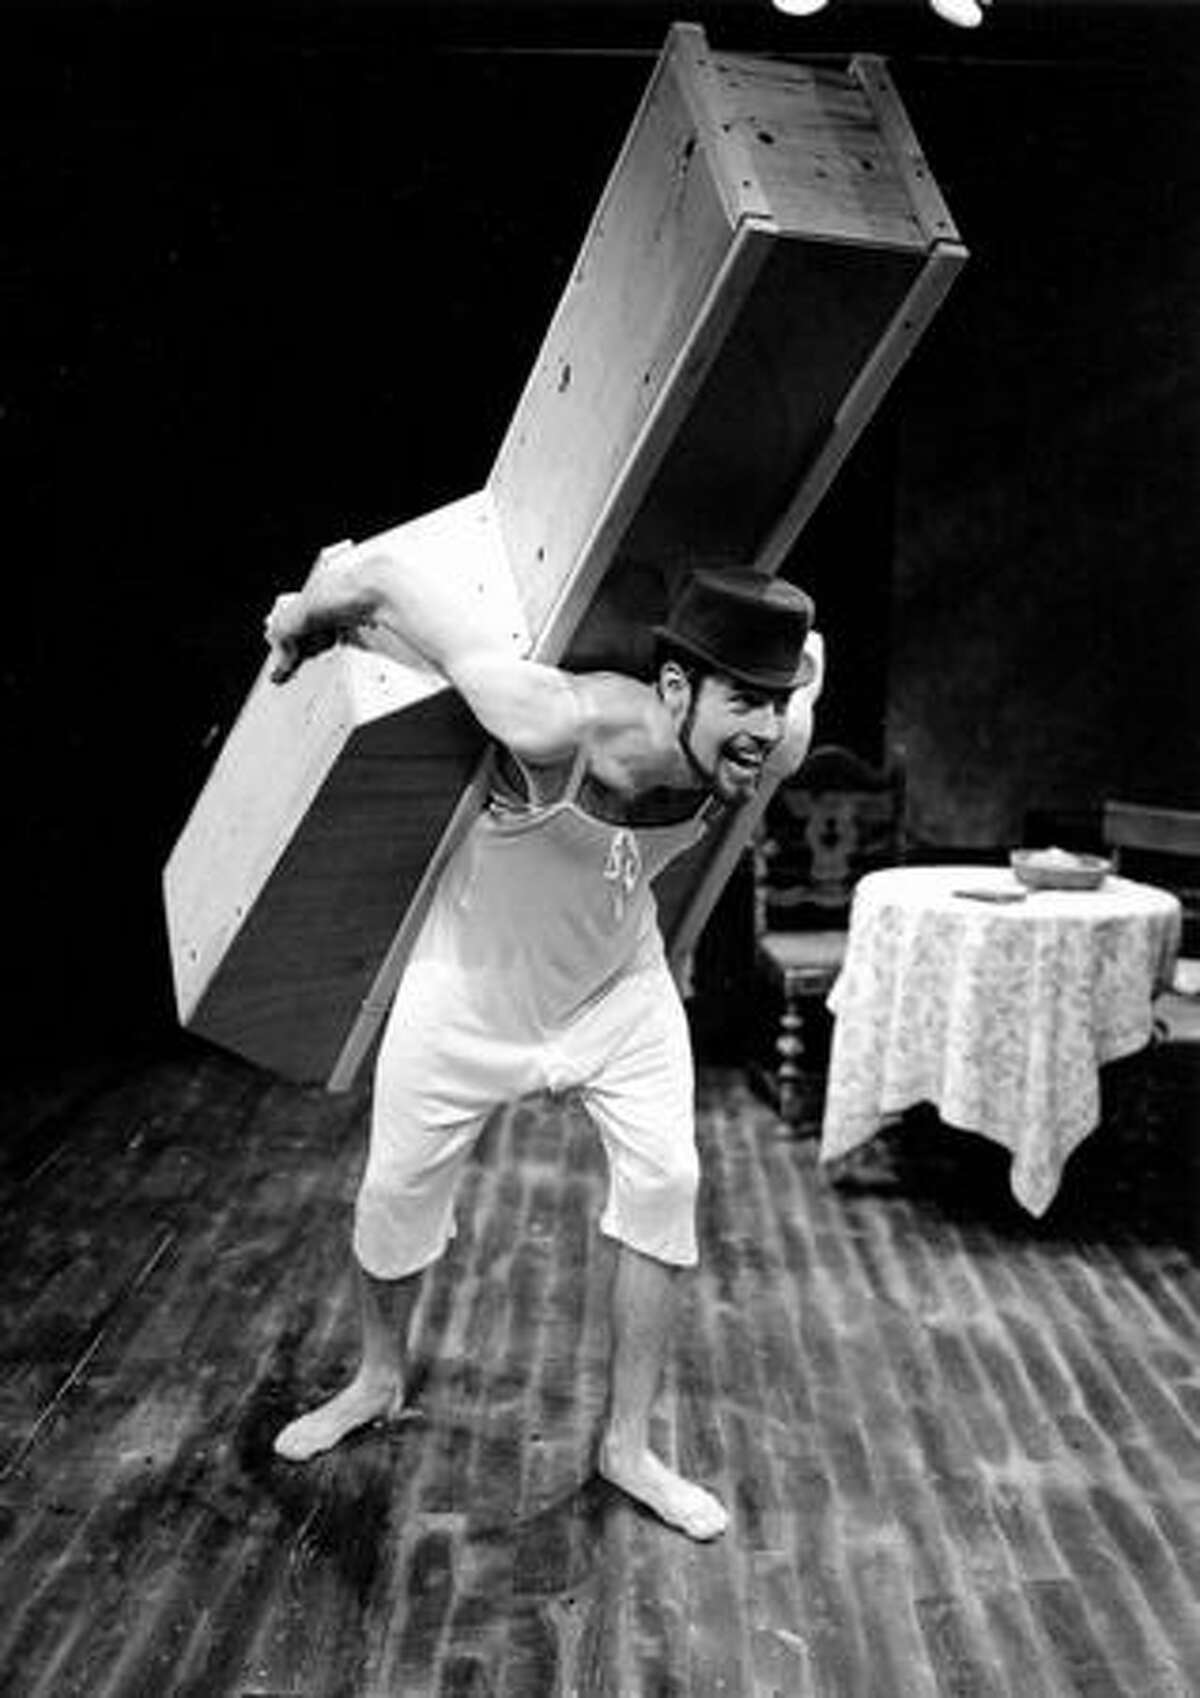 A scene from one of the shows at Book-It Repertory Theatre. (Book-It Repertory Theatre)